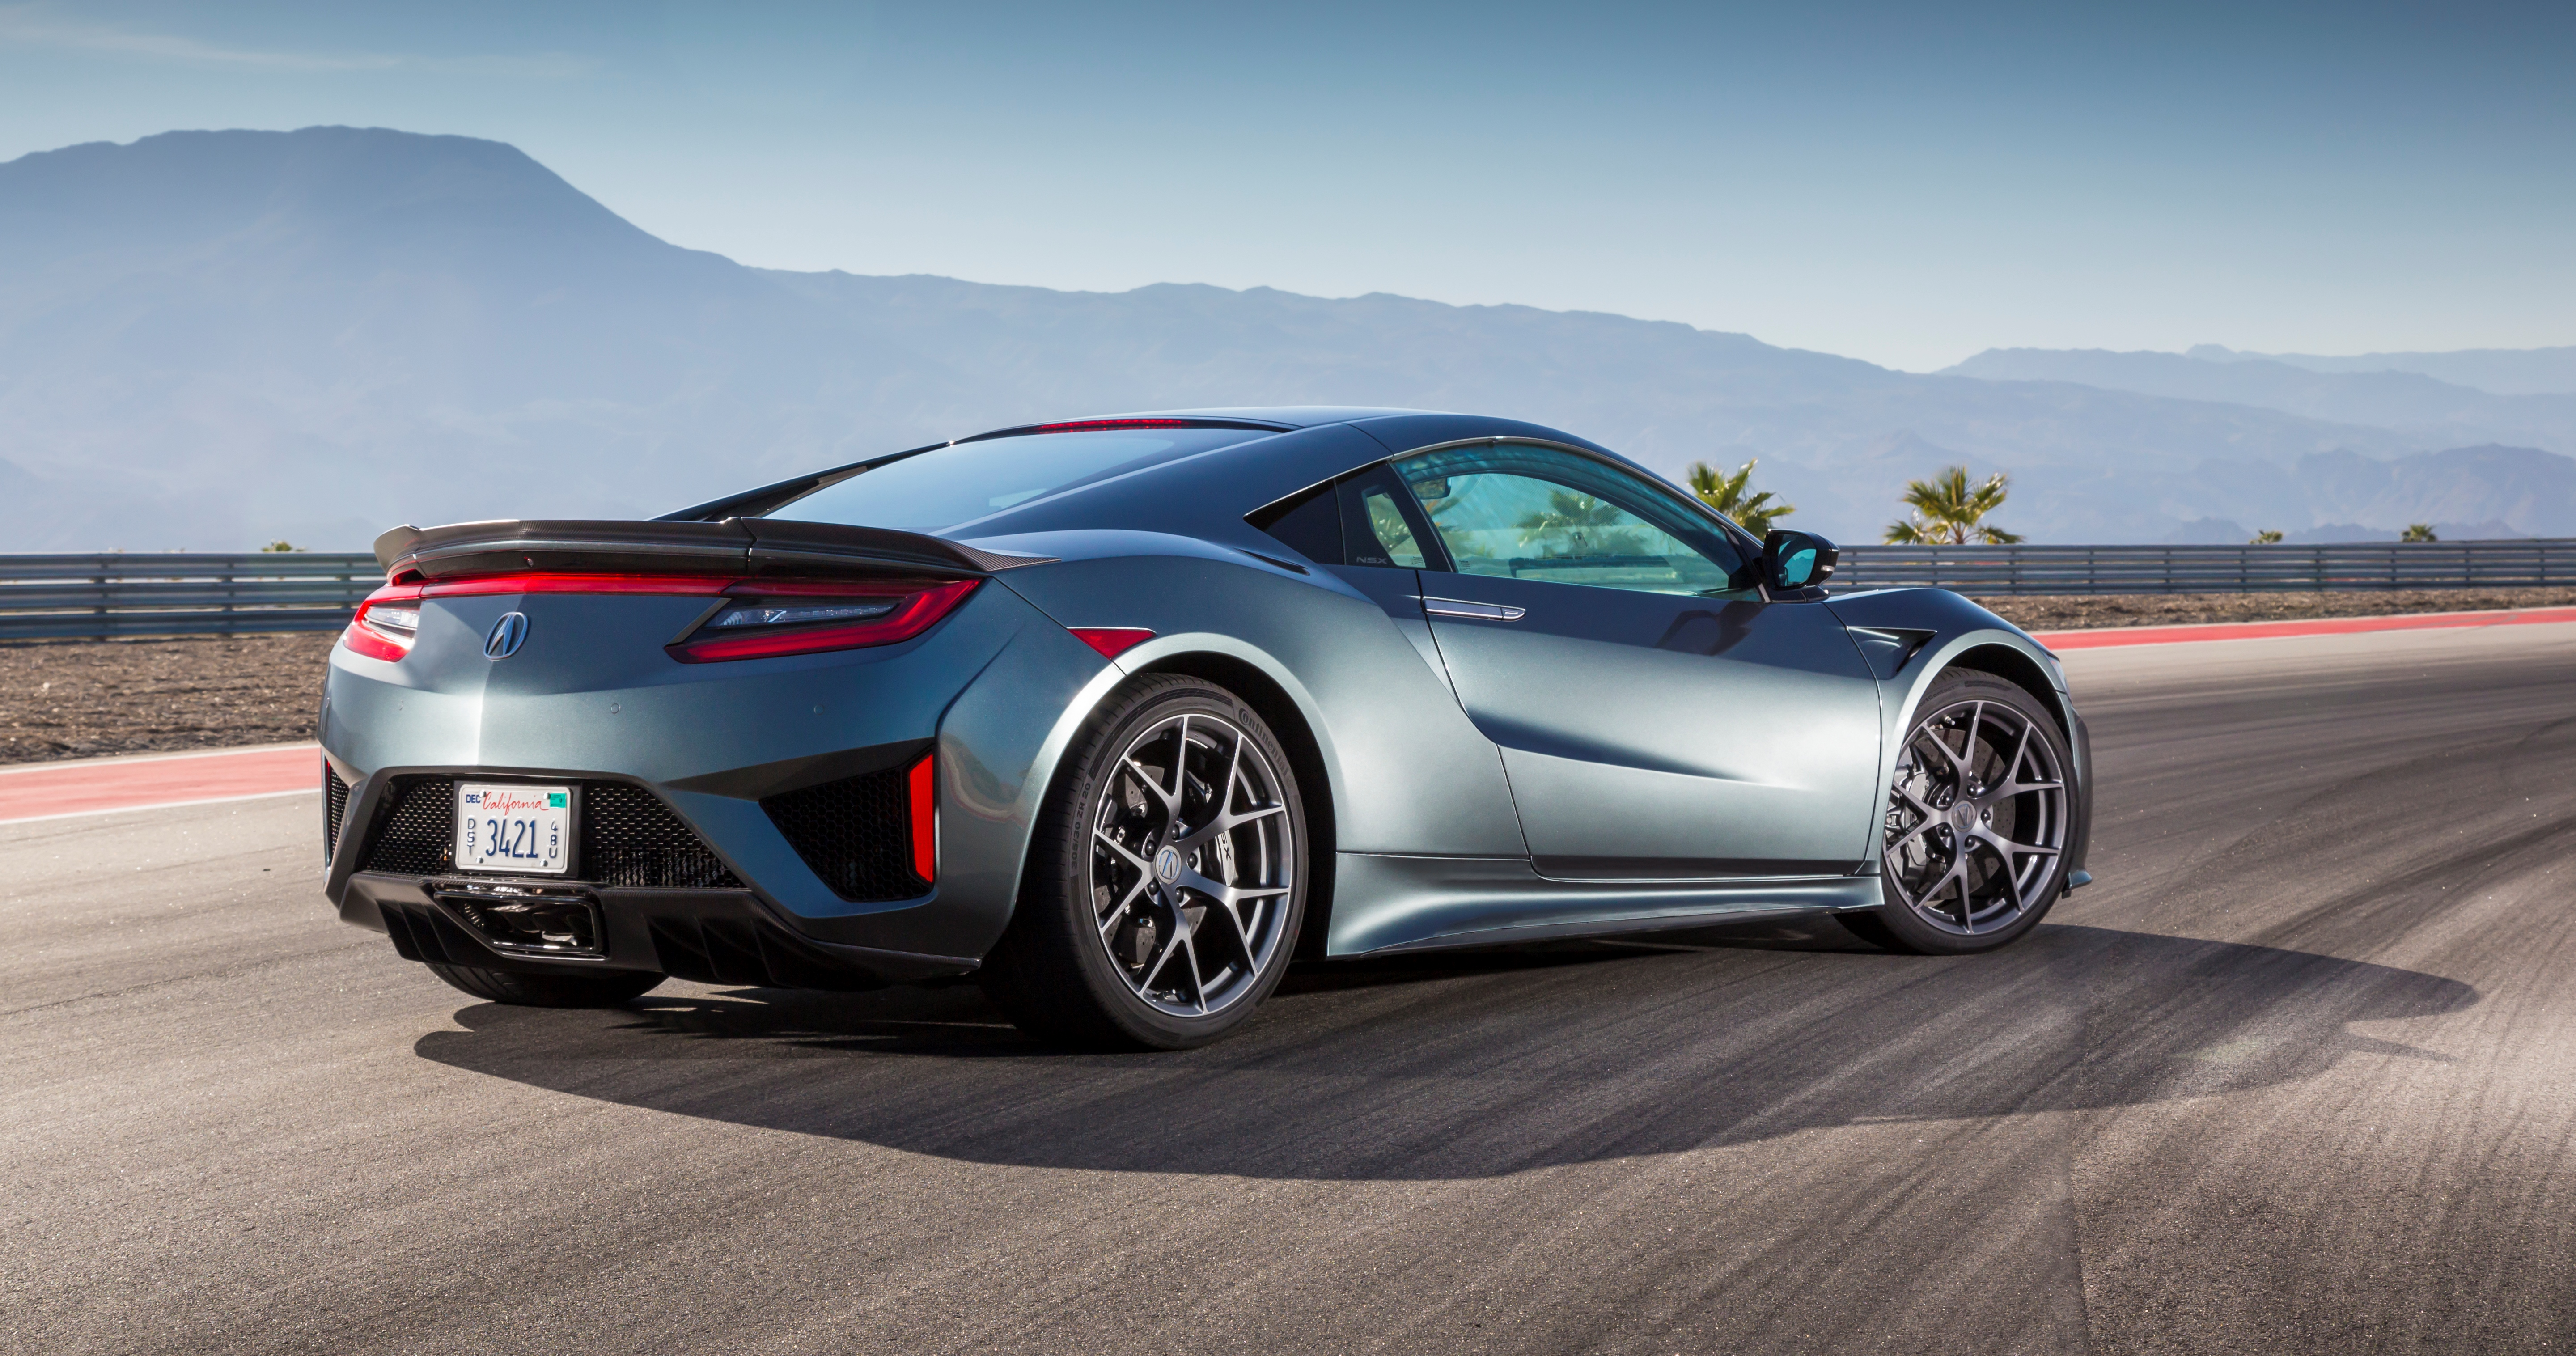 2017 Acura Nsx Named Green Car Journal S Luxury Of The Year